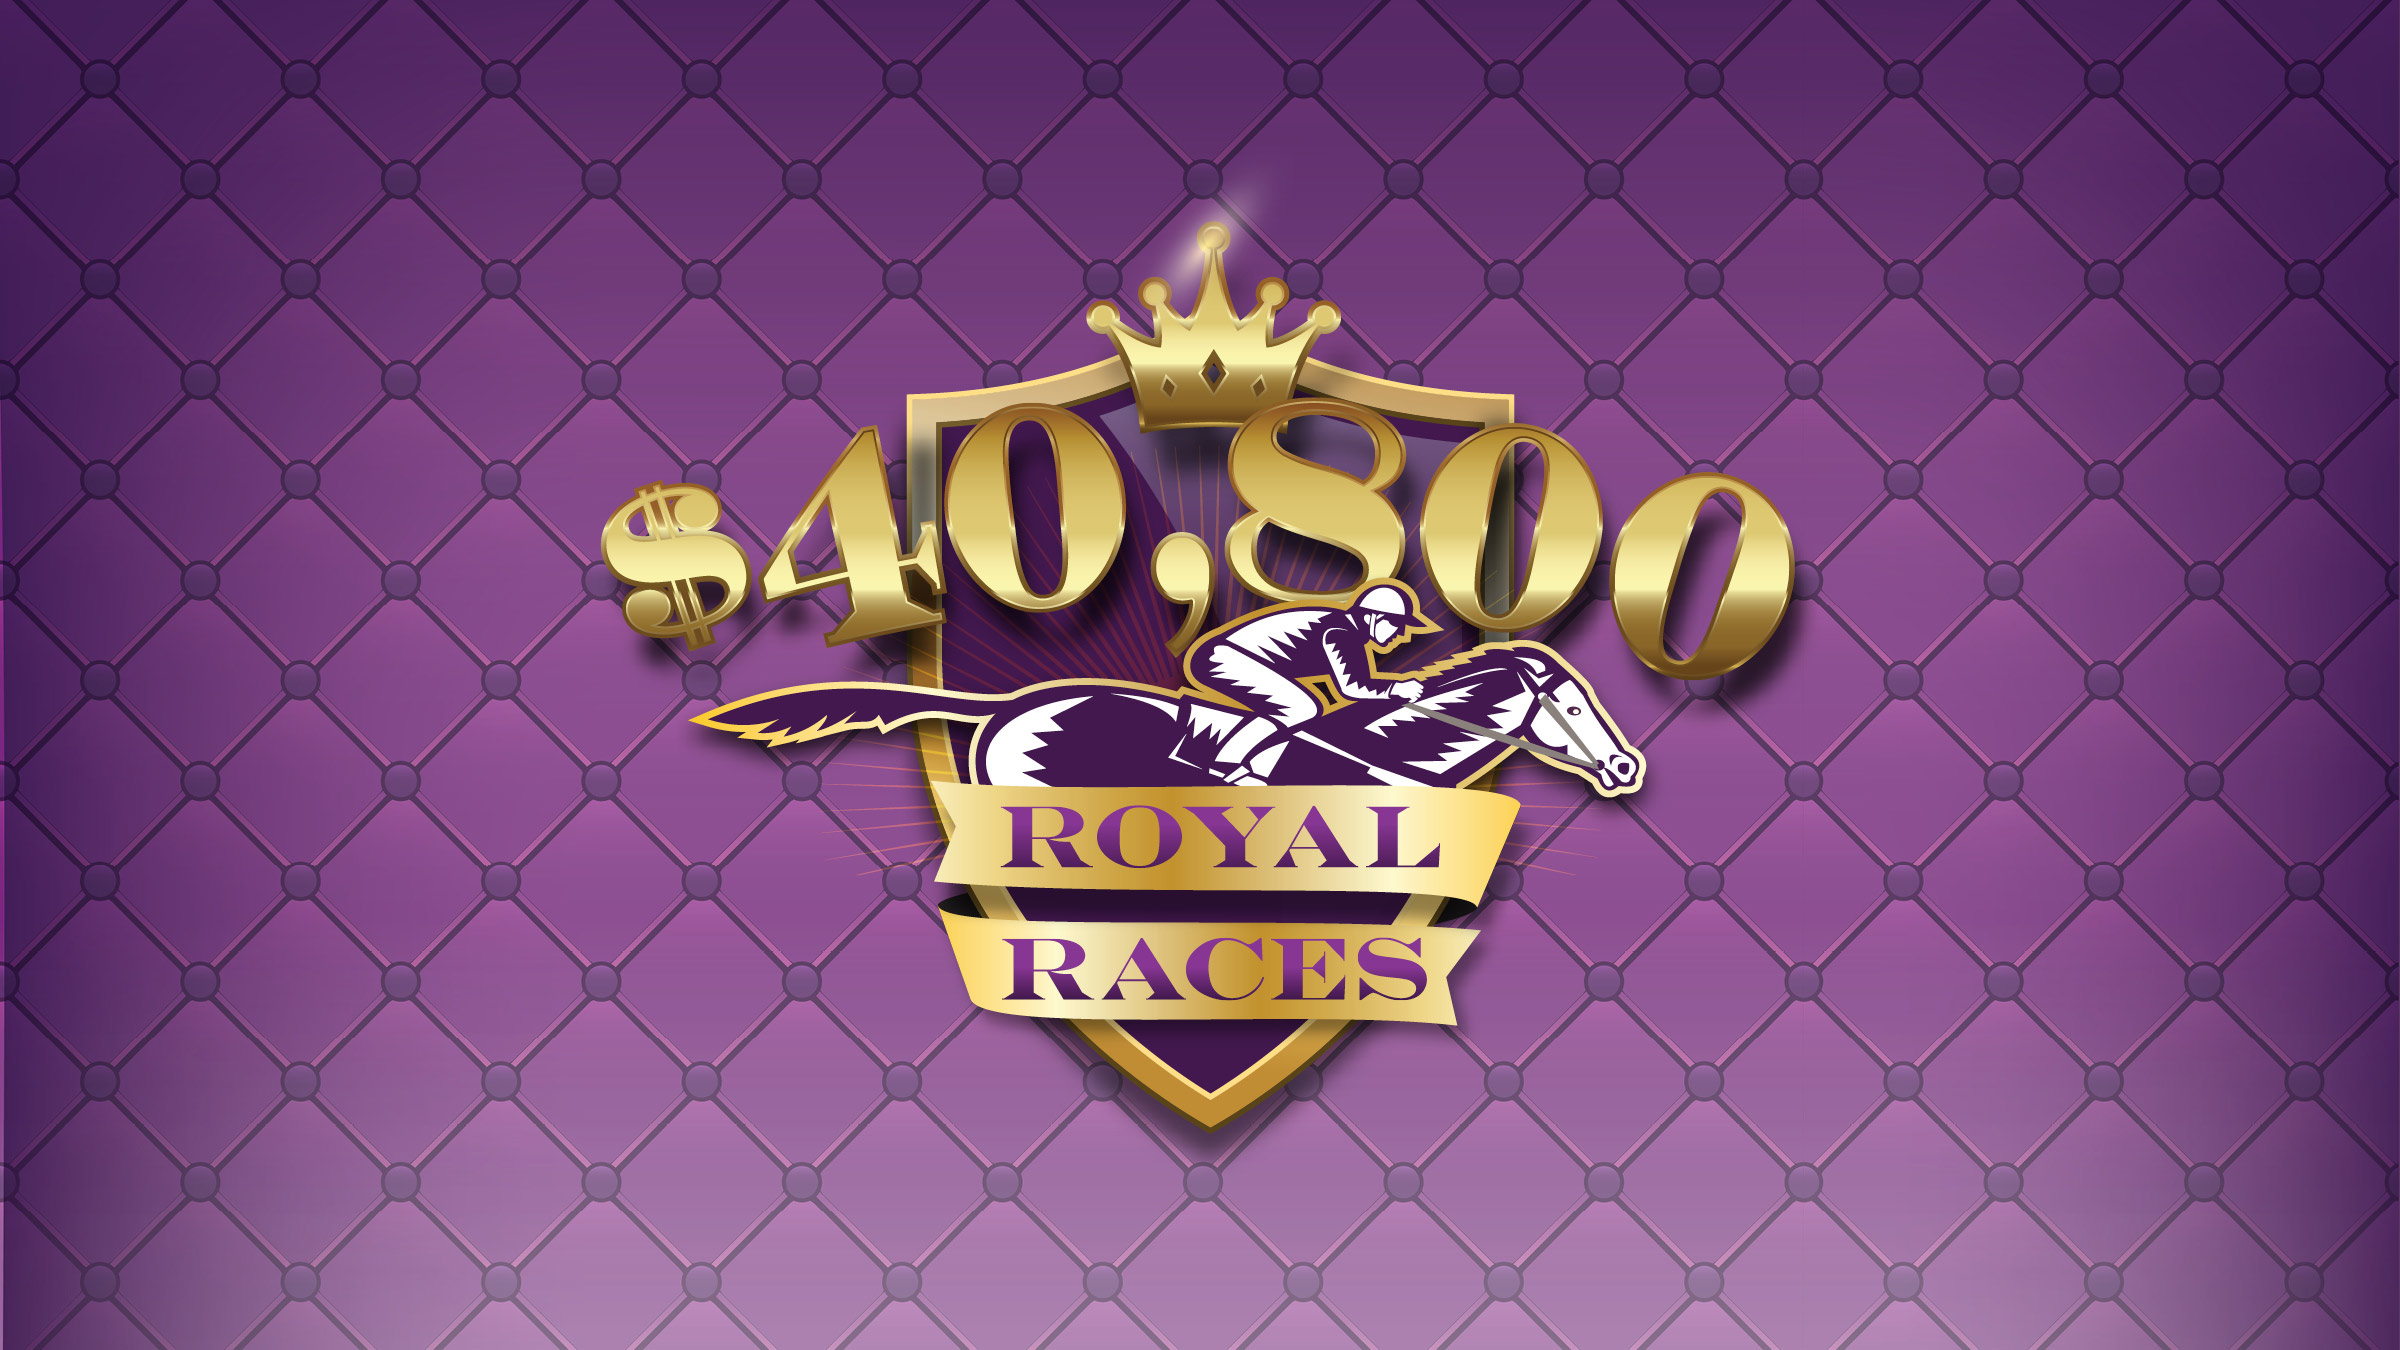 $40,800 Royal Races